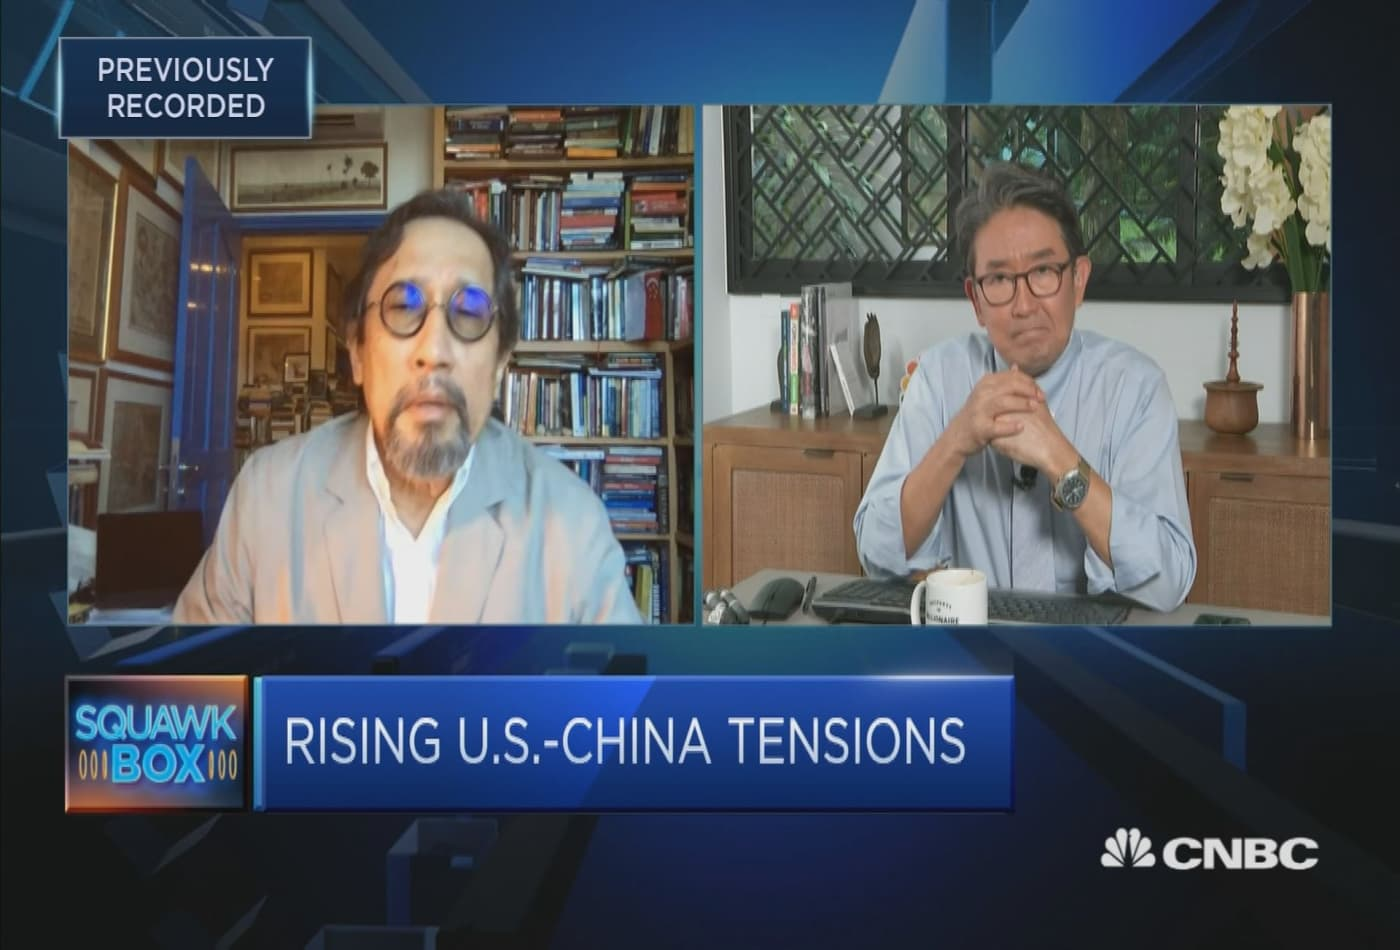 We are not headed for a new U.S.-China 'cold war,' says expert